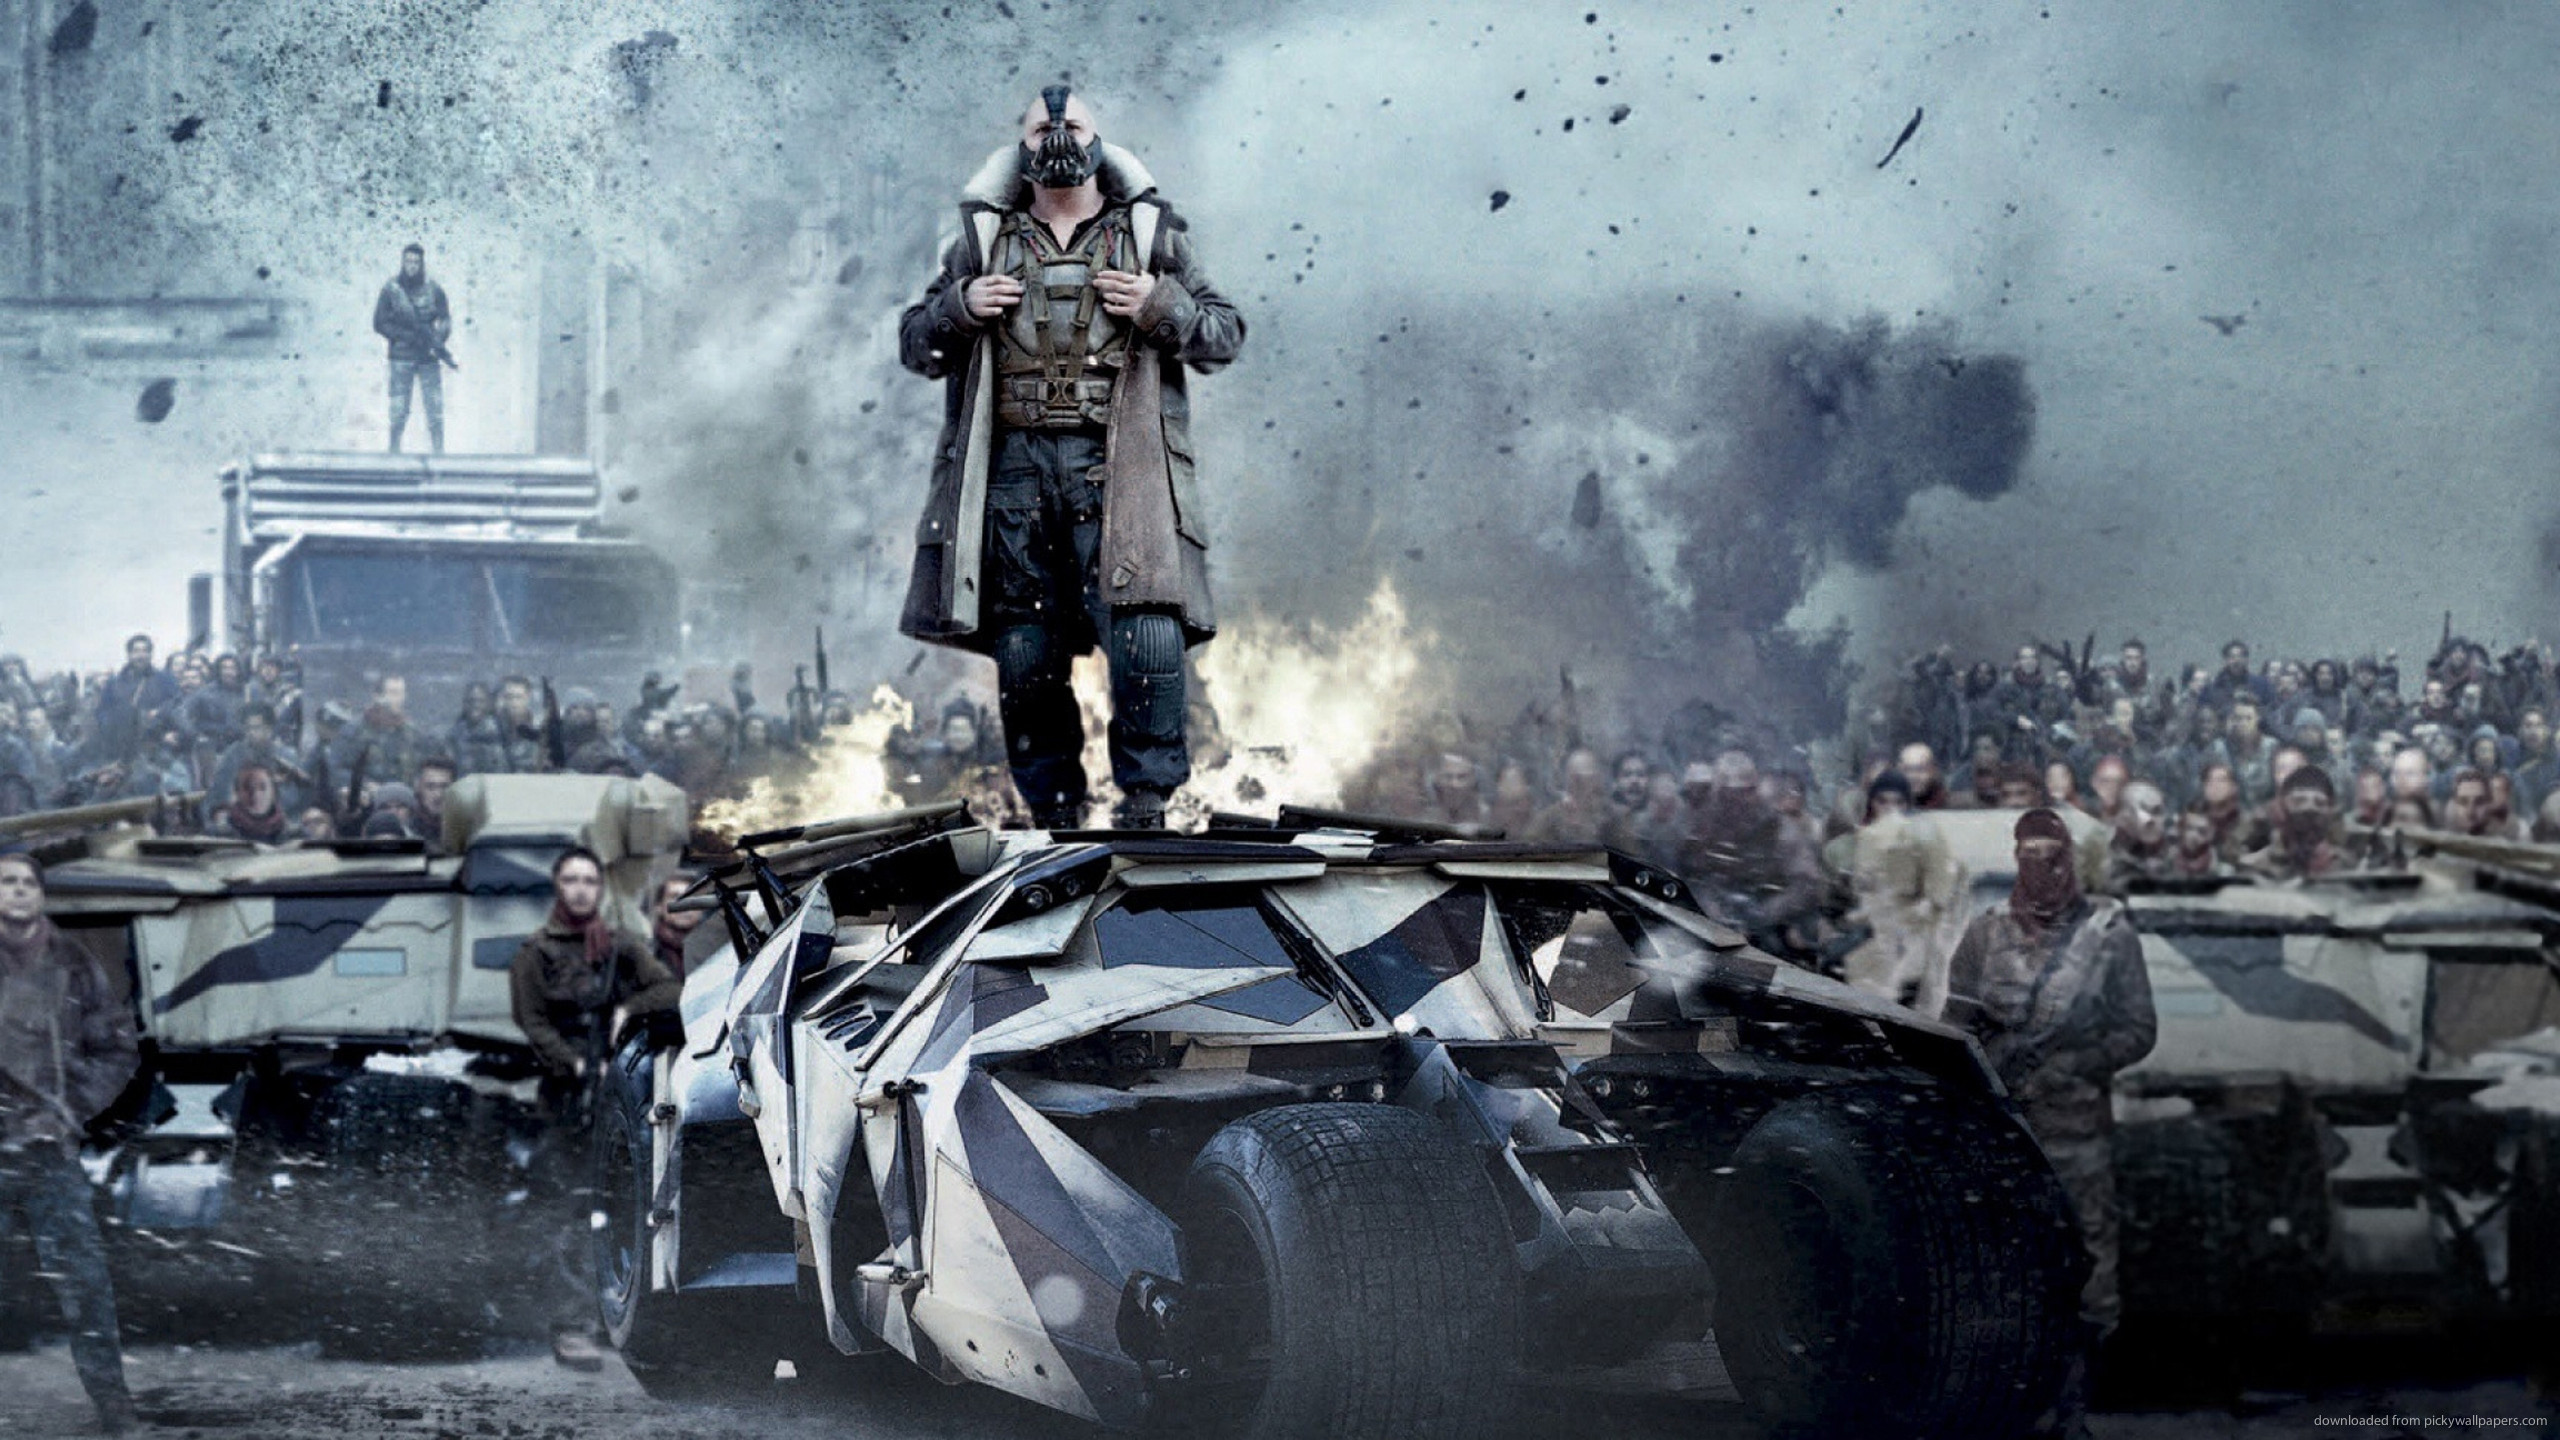 2560x1440 Bane Standing On The Batmobile for